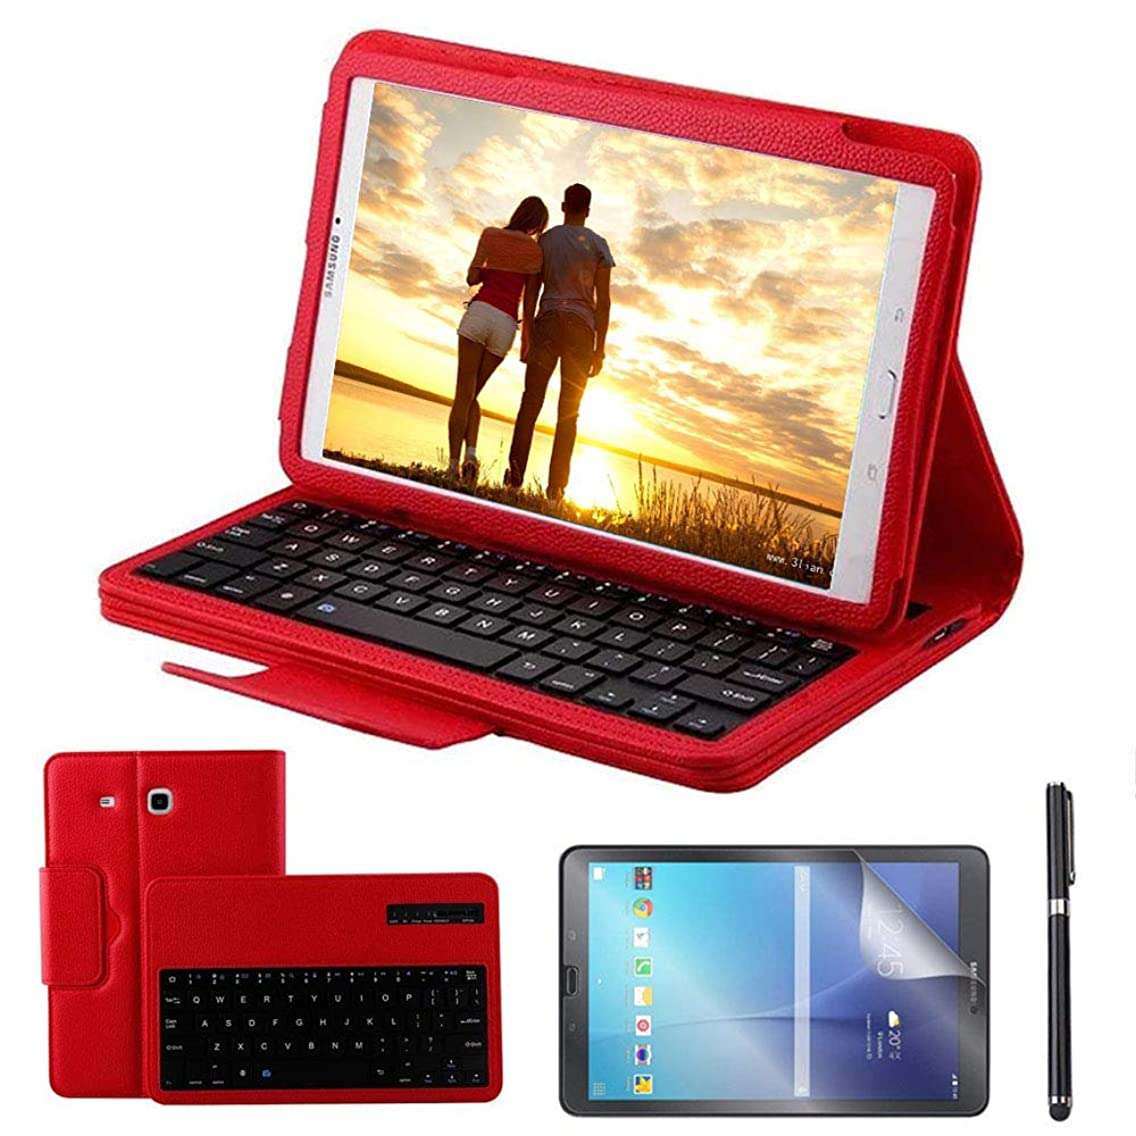 Galaxy Tab E 9.6 Keyboard Case with Screen Protector & Stylus, REAL-EAGLE Separable Fit PU Leather Case Cover Magnetically Wireless Keyboard for Tab E 9.6 Inch SM-T560,T561,T567,Red